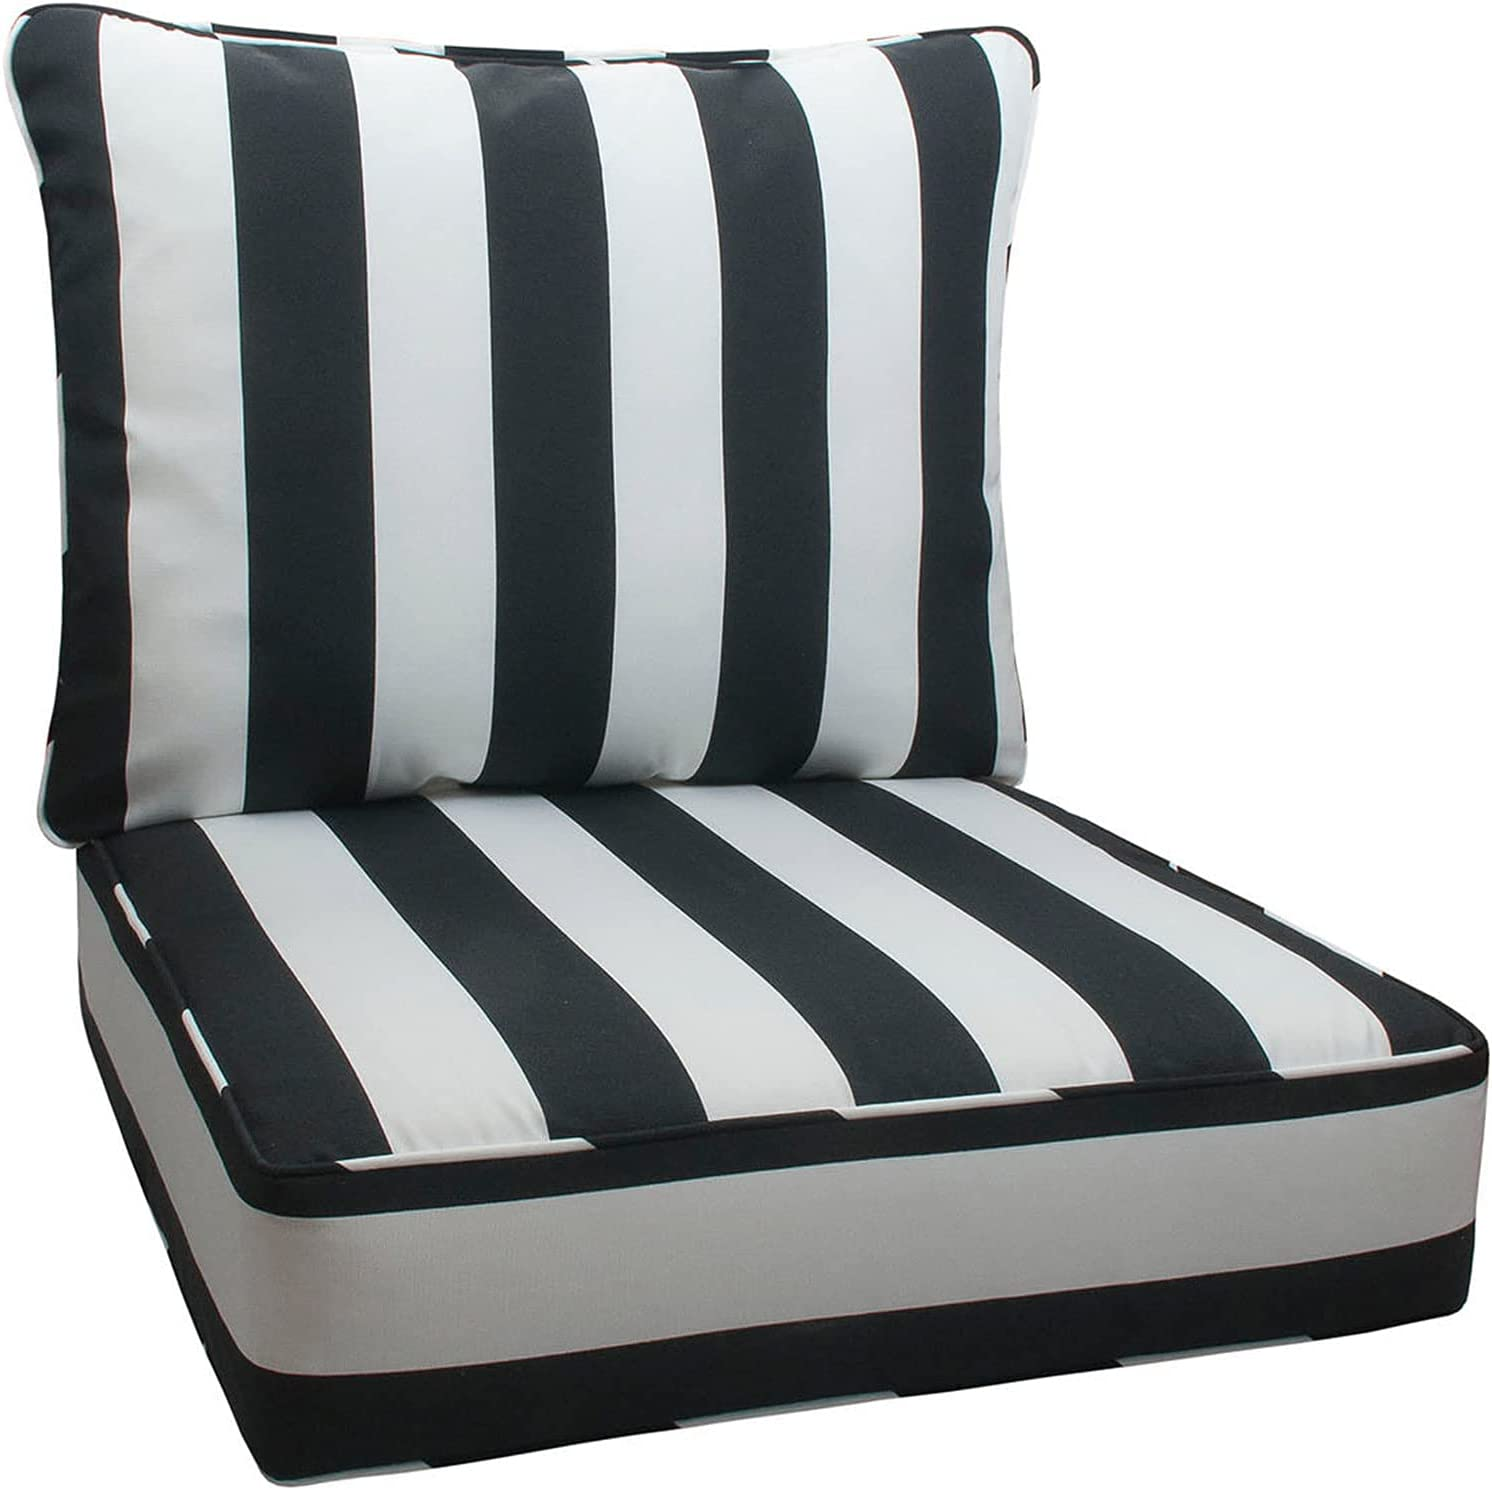 IN4 Care Special price for a limited time Outdoor Patio Deep Seat Back shop and All Weather Cushions